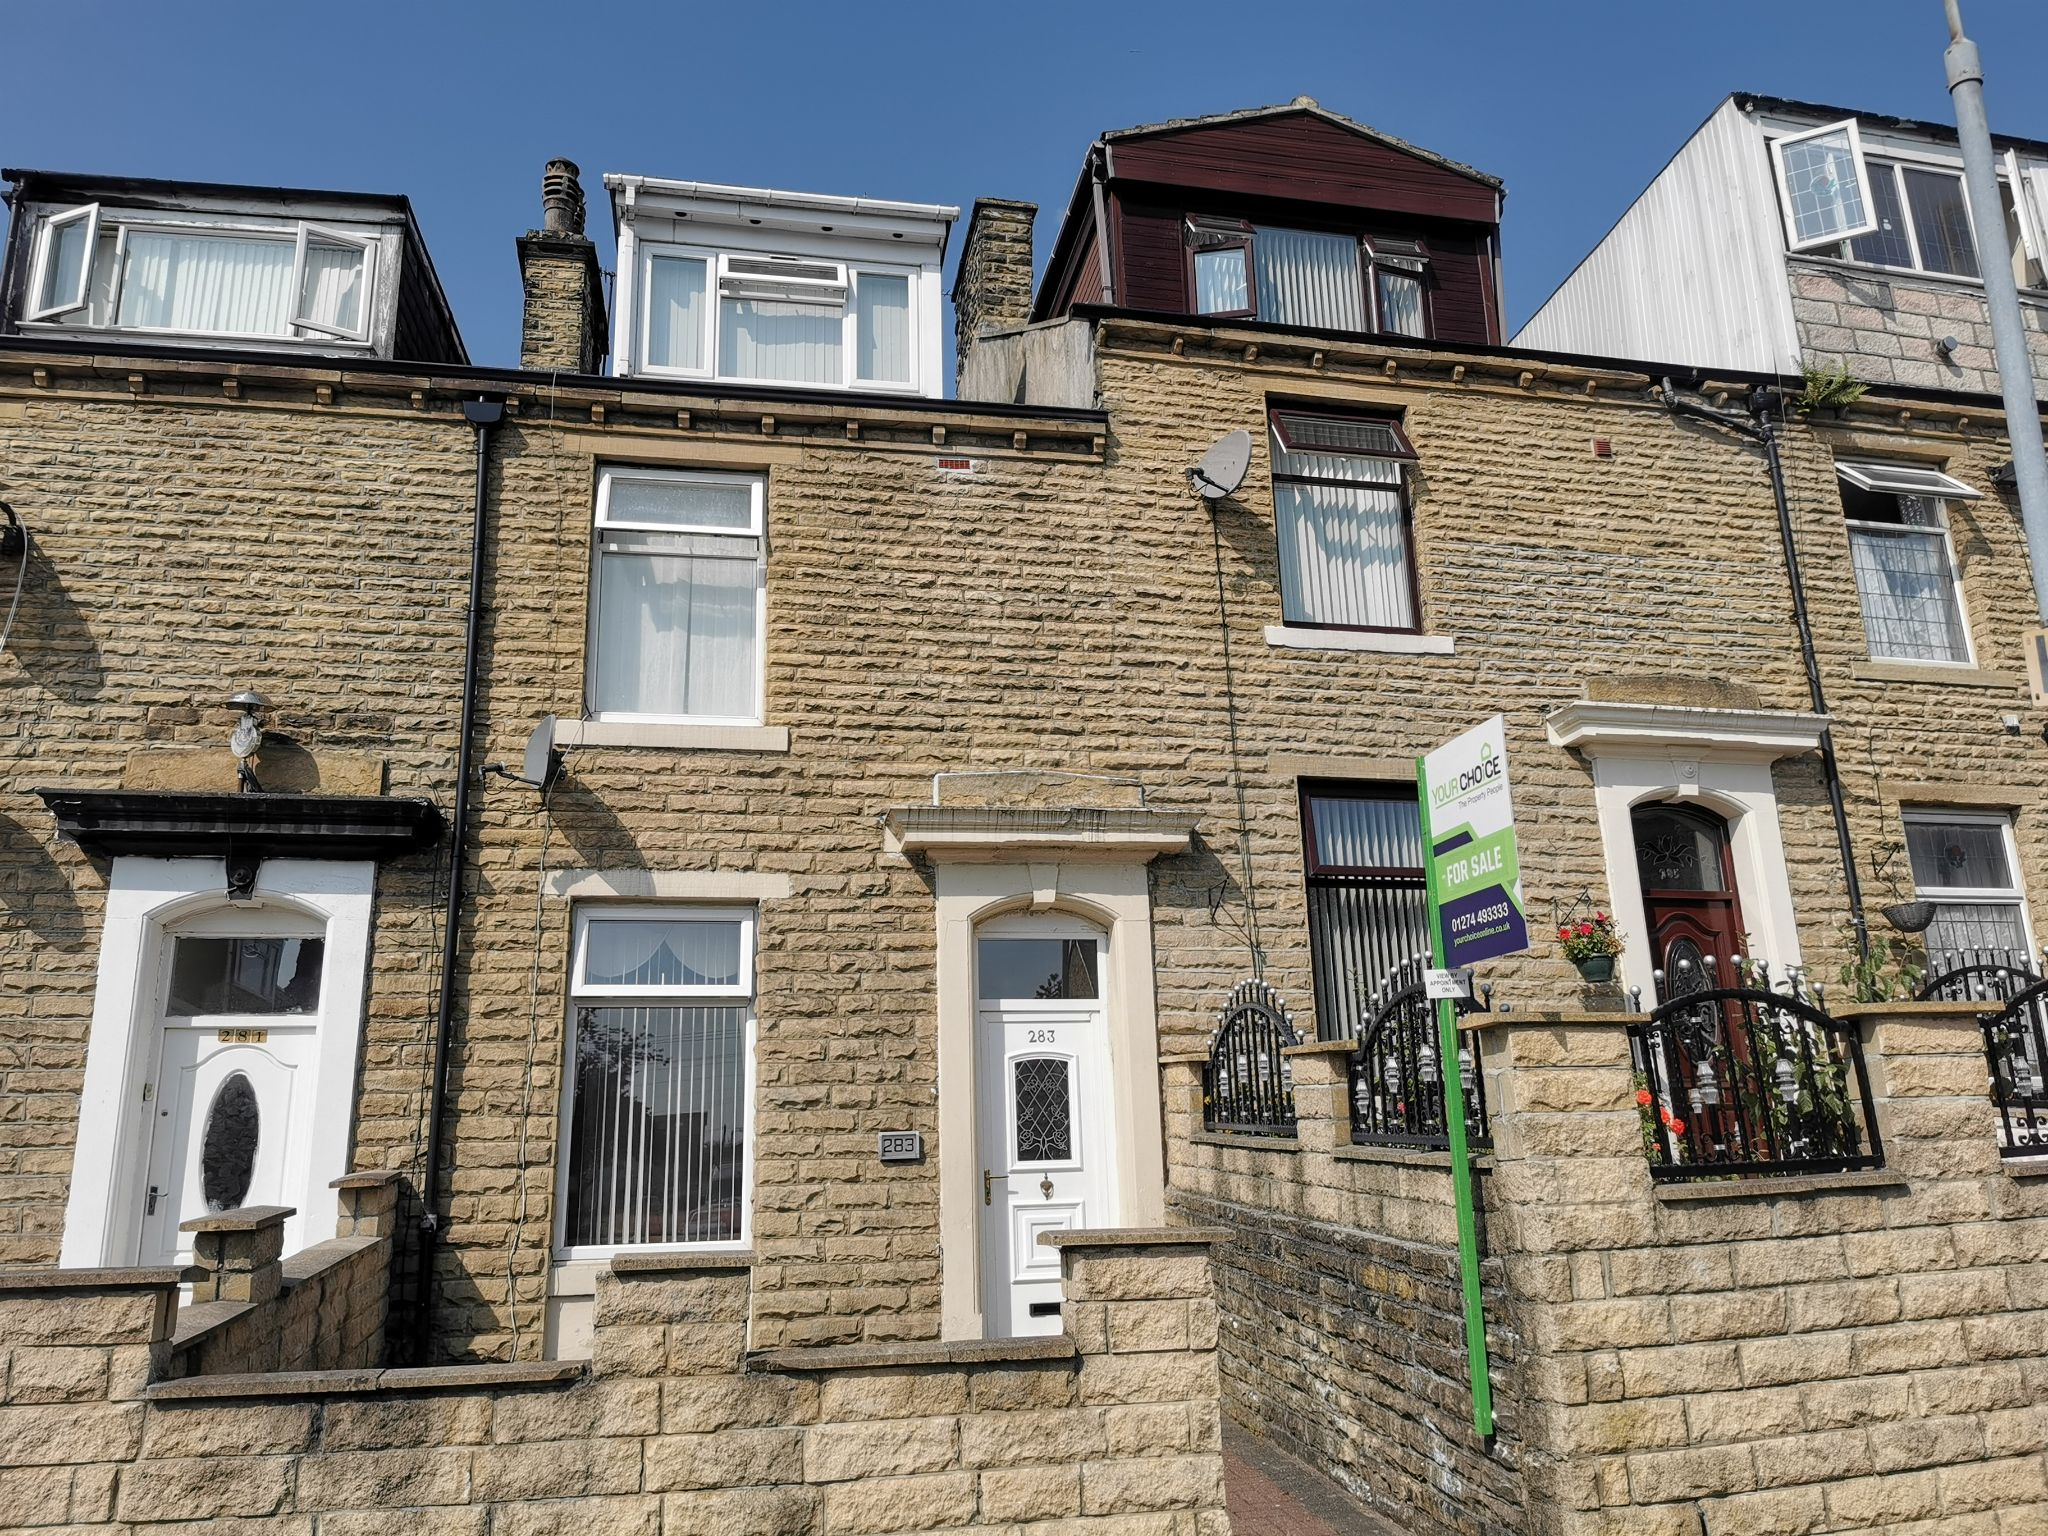 4 bedroom mid terraced house For Sale in Bradford - Photograph 3.